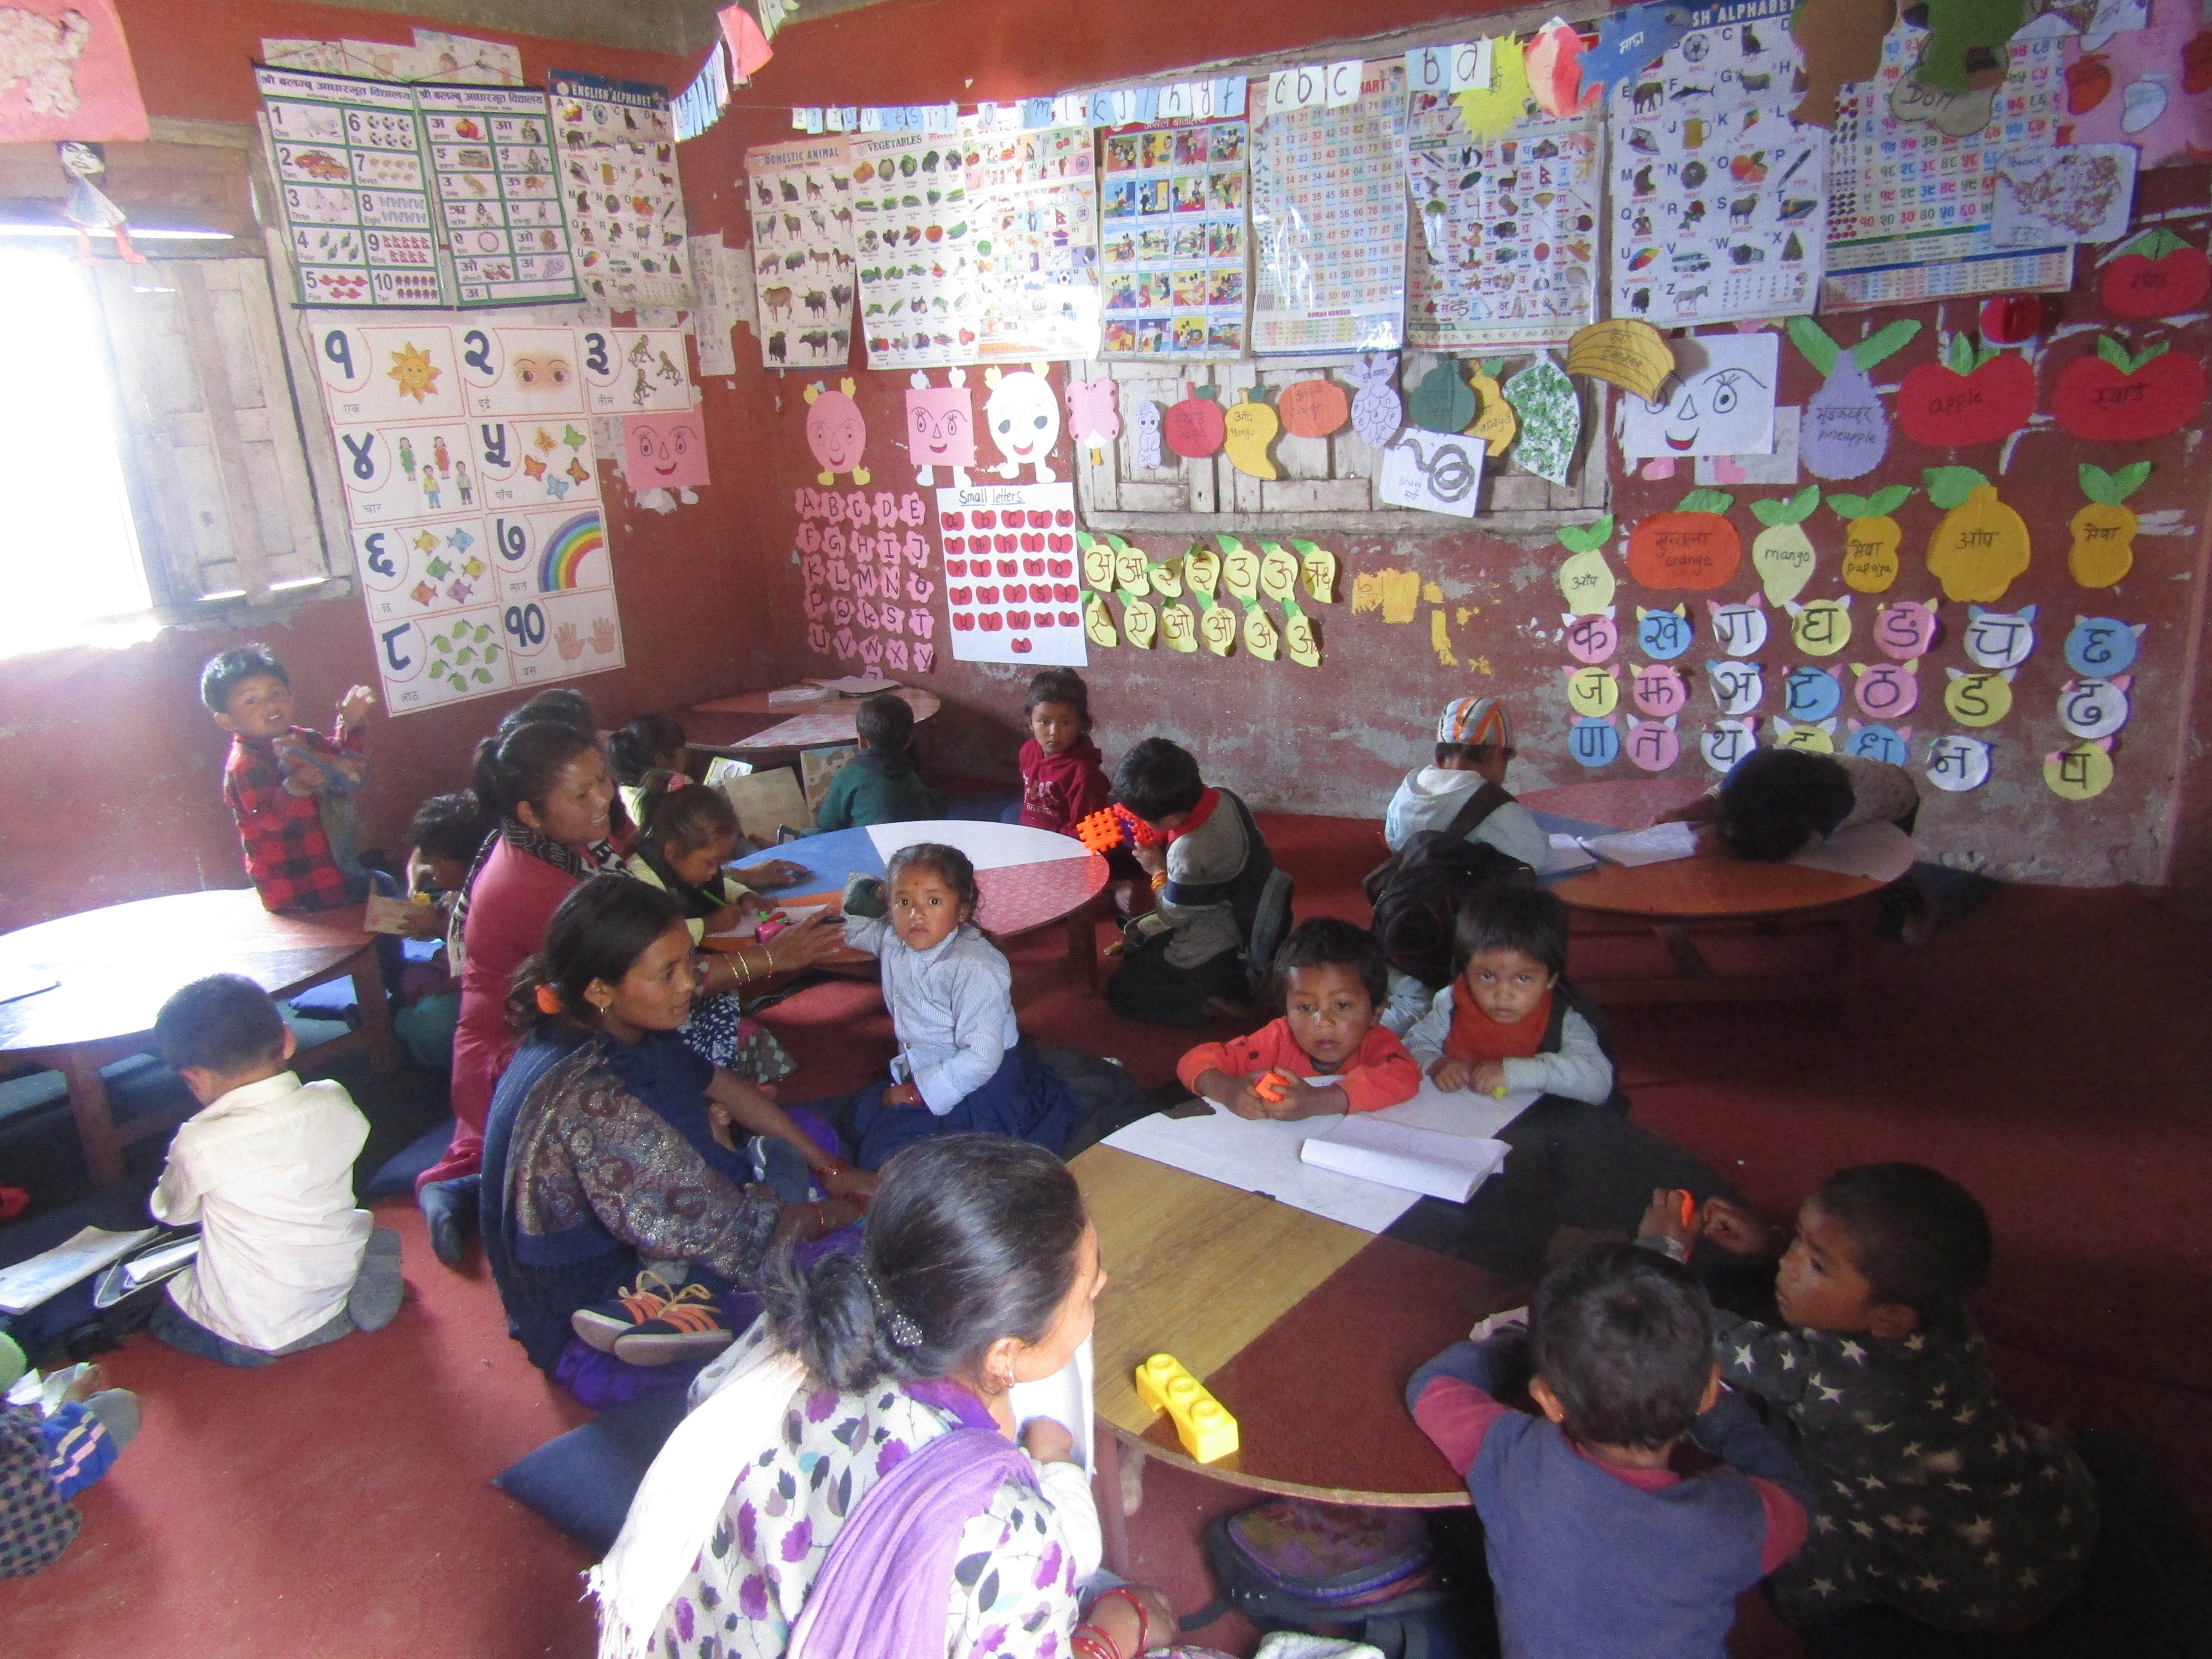 Welcoming and enriching classrooms